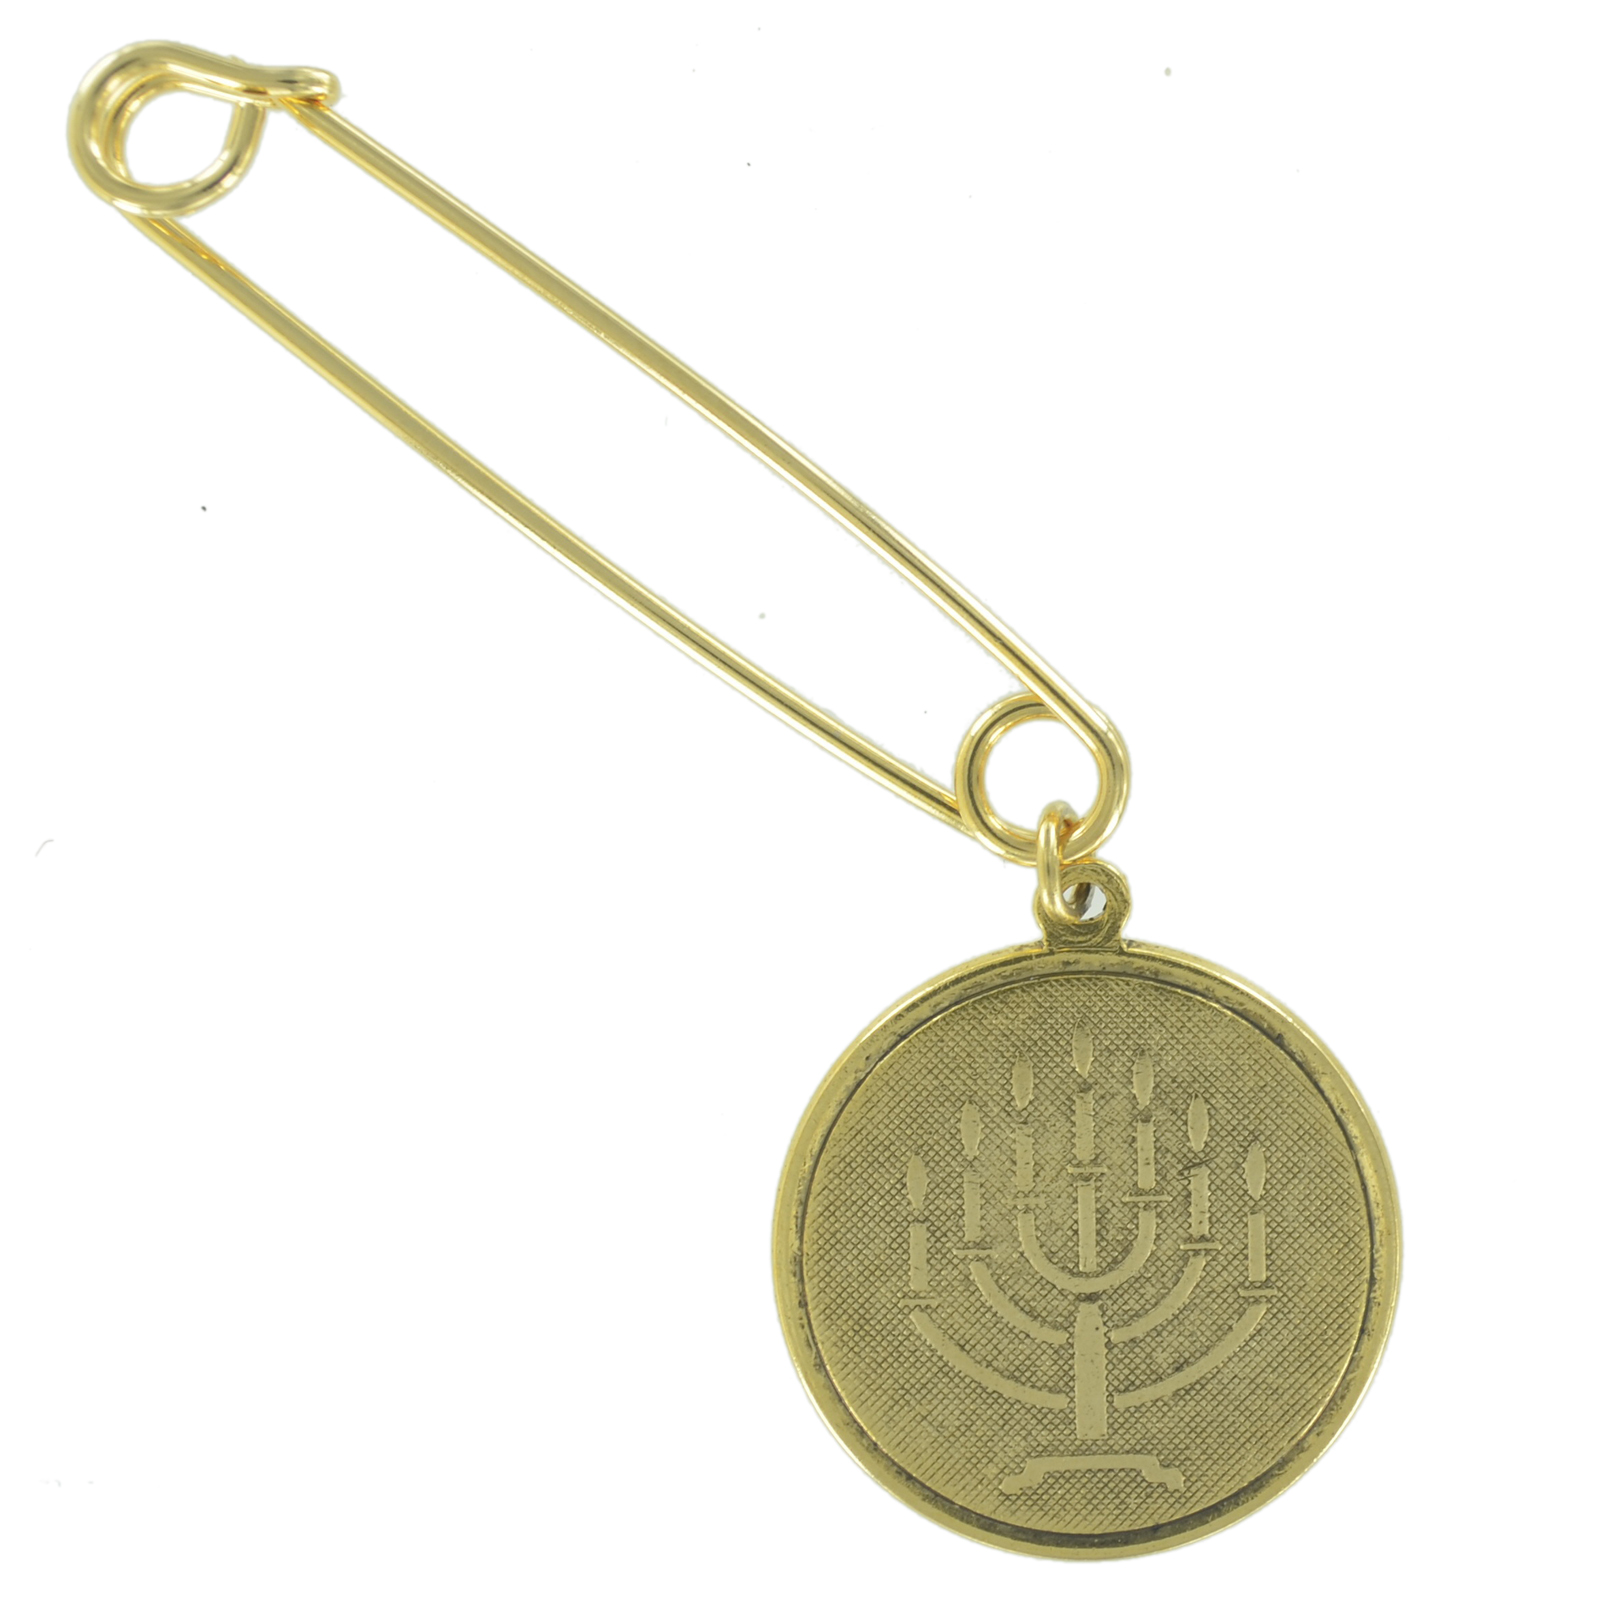 "Safety Pin Brooch 2"" Gold Tone Jewish Hebrew Menorah Symbol Charm Dangle End by Ky & Co"